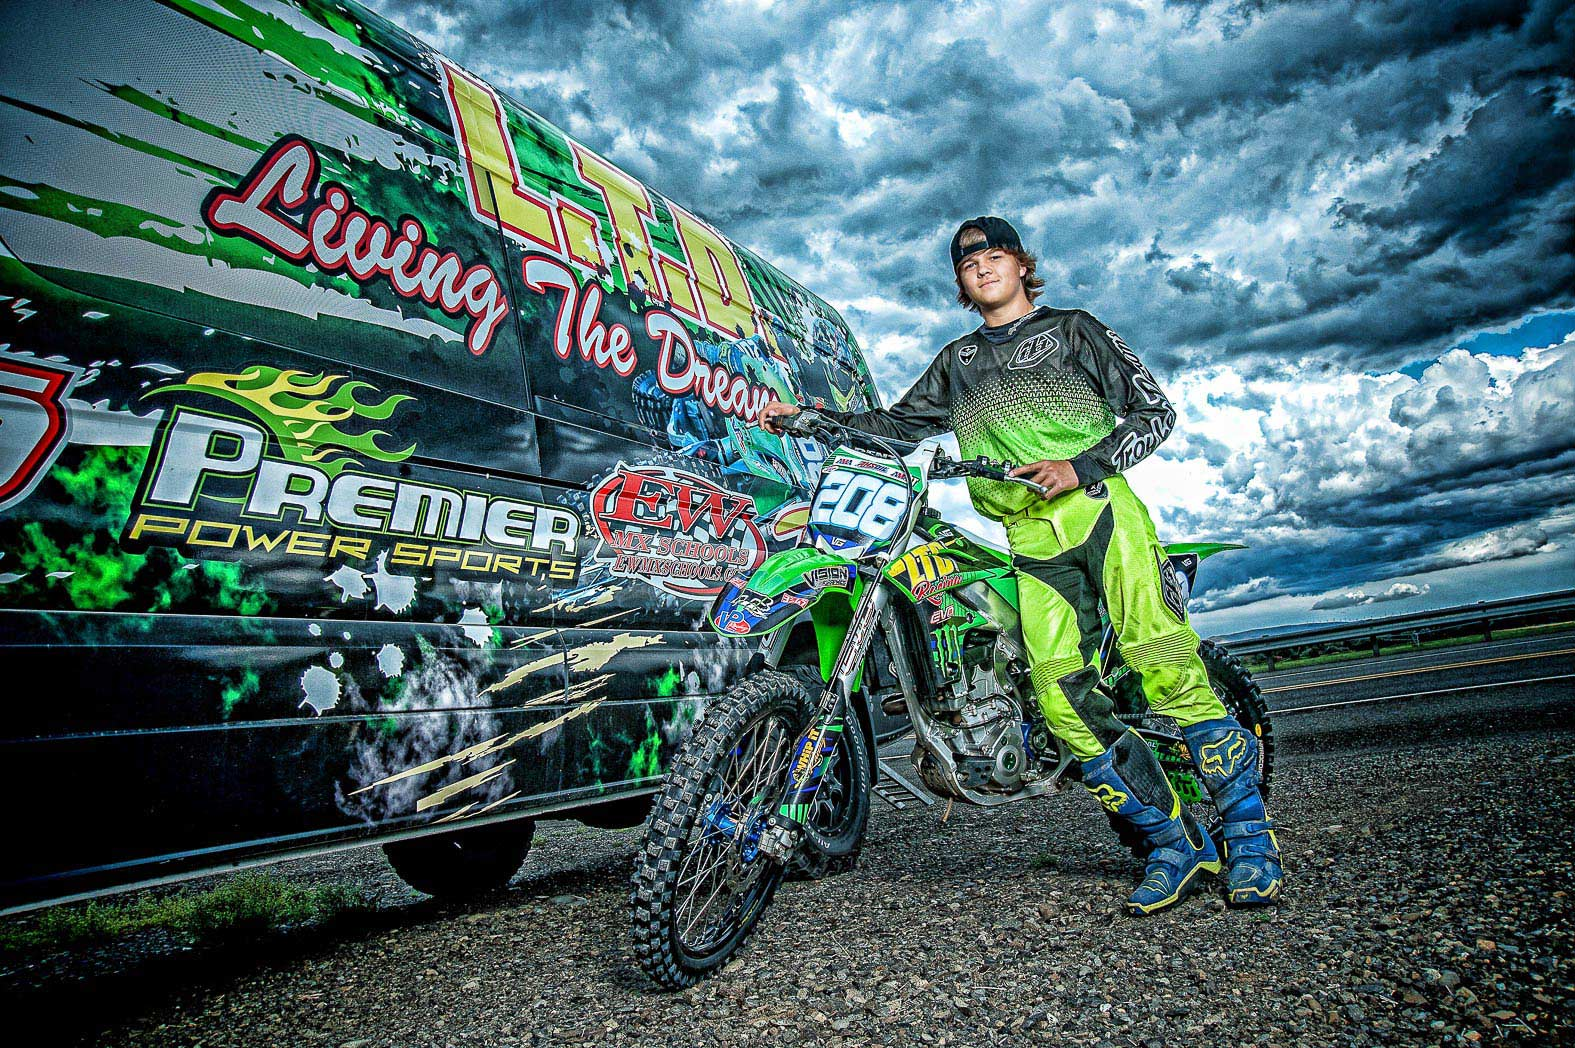 boy-standing-with-motorcycle-by-brightly-painted-van-during-motocross-senior-pictures